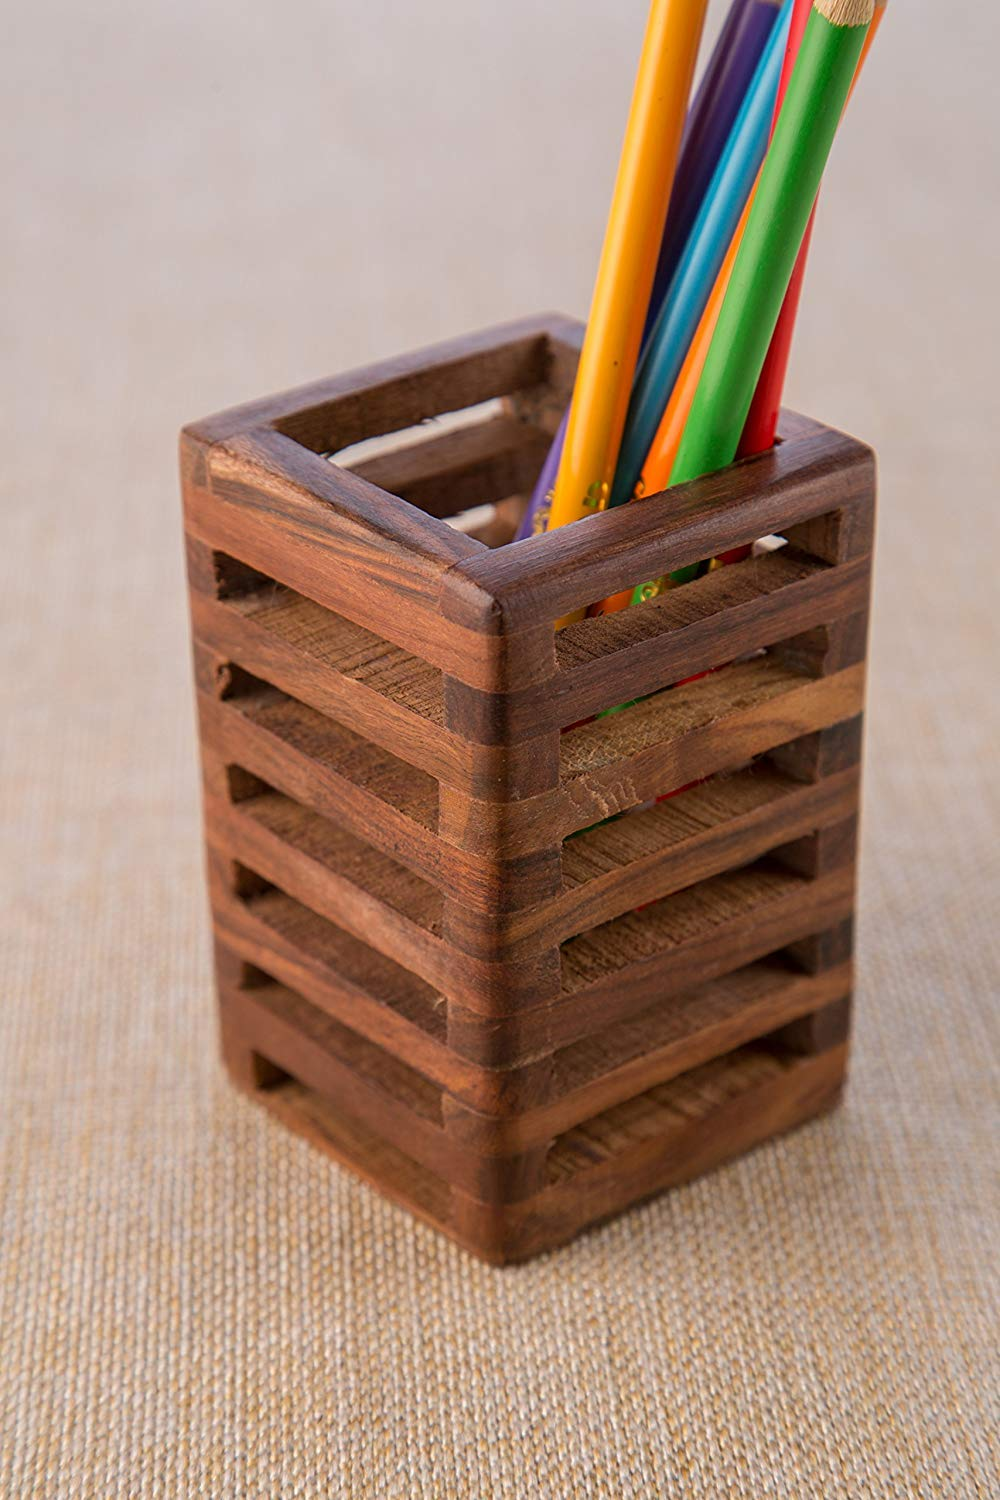 Office Table School Supplies S.B.ARTS Indian Wood Decorative Mesh Design Wooden Pen Home Gift for Birthday 2.75 x 2.75 x 4.25 in Pencil Holder//Handmade Traditional Storage Organizer for Desk